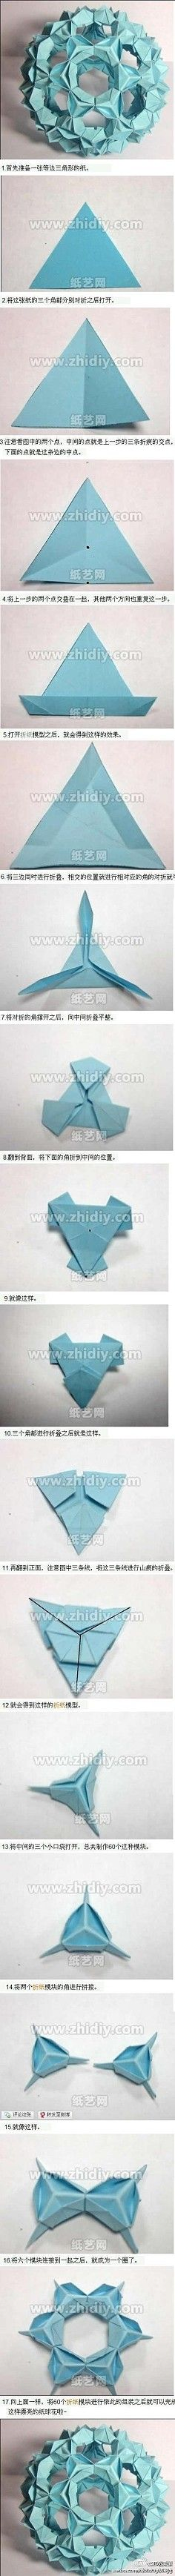 Blue Star paper origami flower ball tutorial